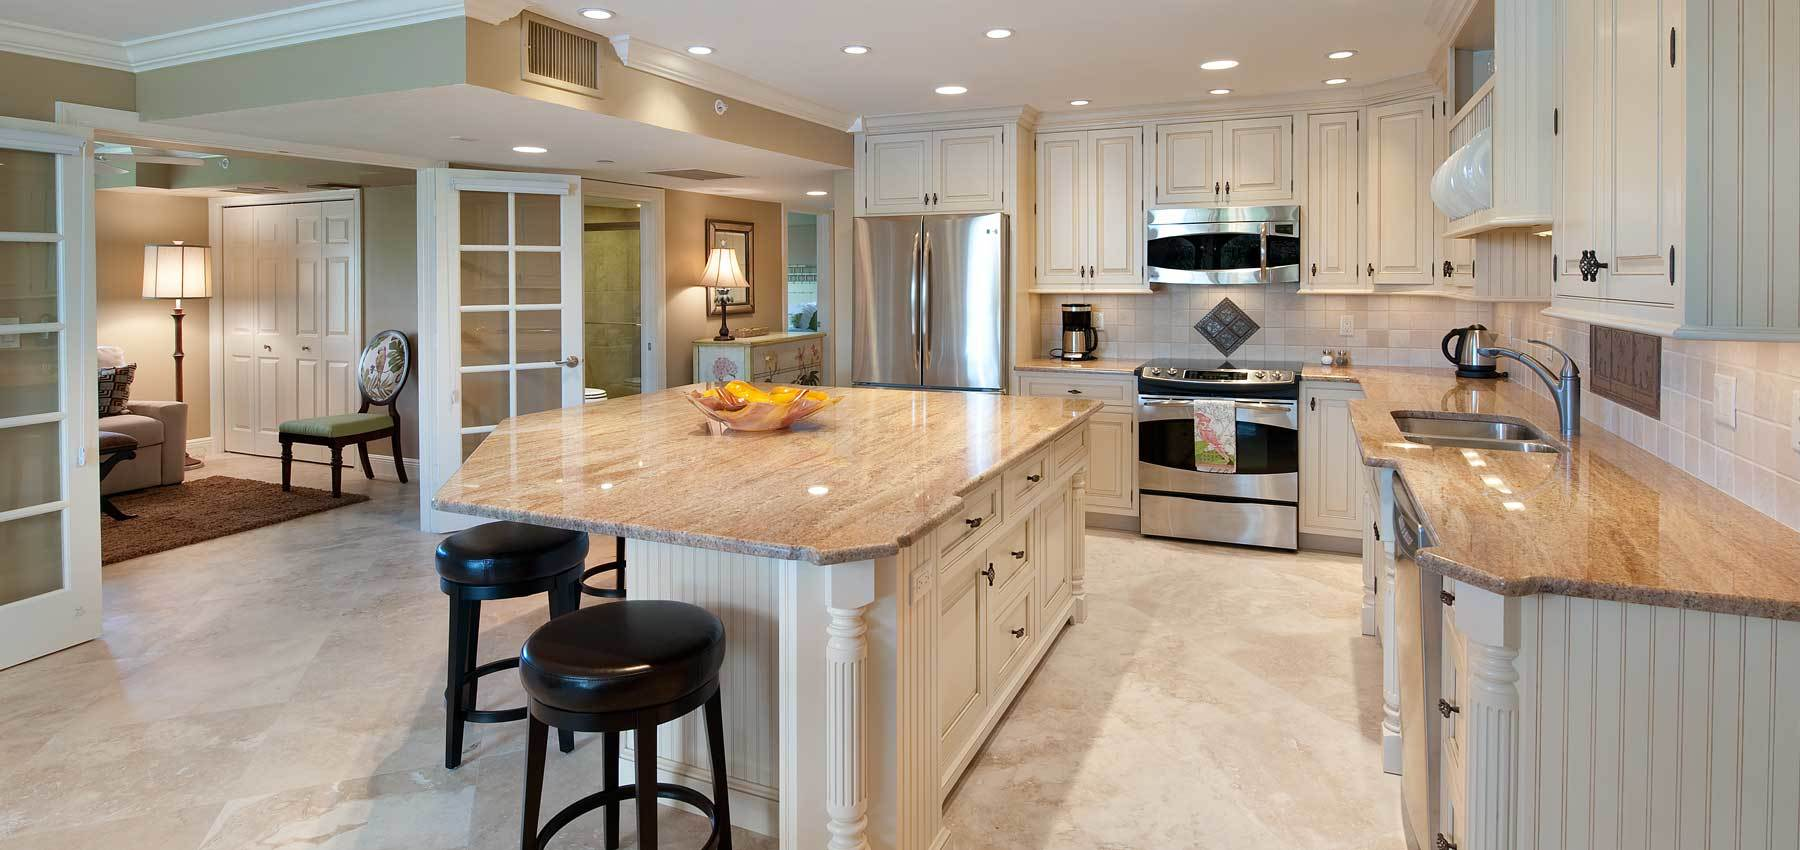 Florida Kitchen Remodel Ideas Florida Kitchen Ideas